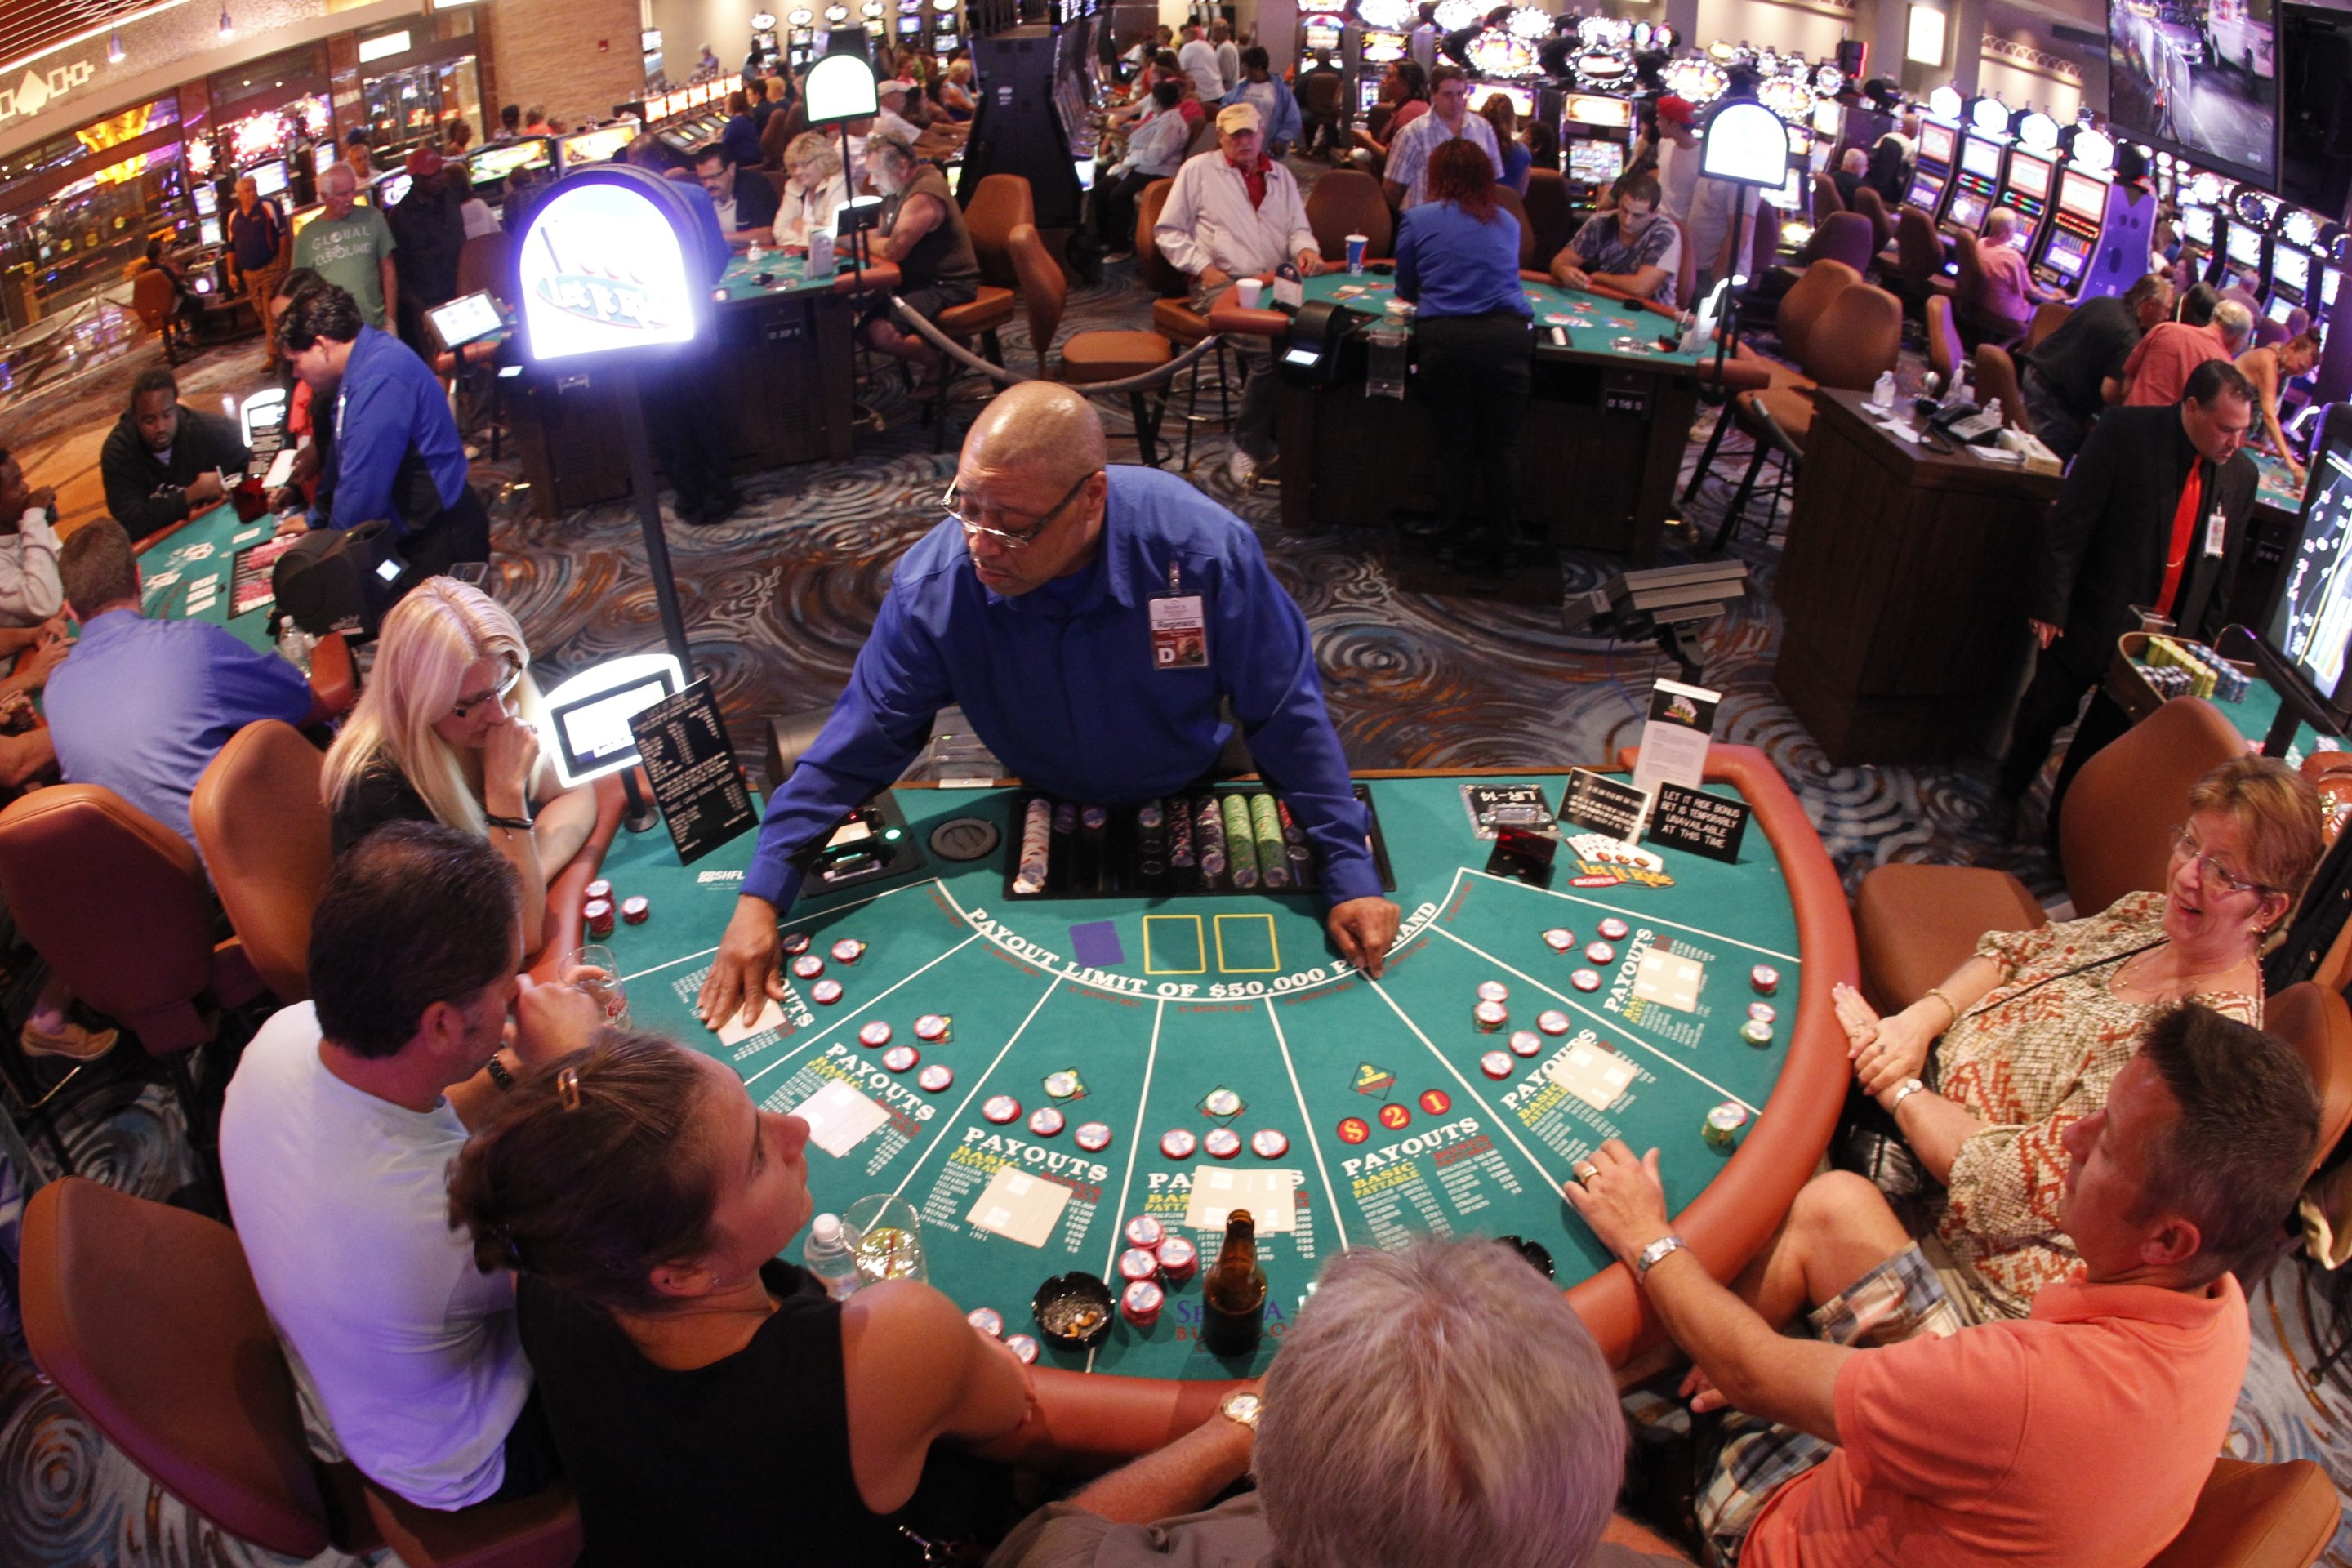 Supporters want to expand the number of state-sanctioned casinos in New York State.